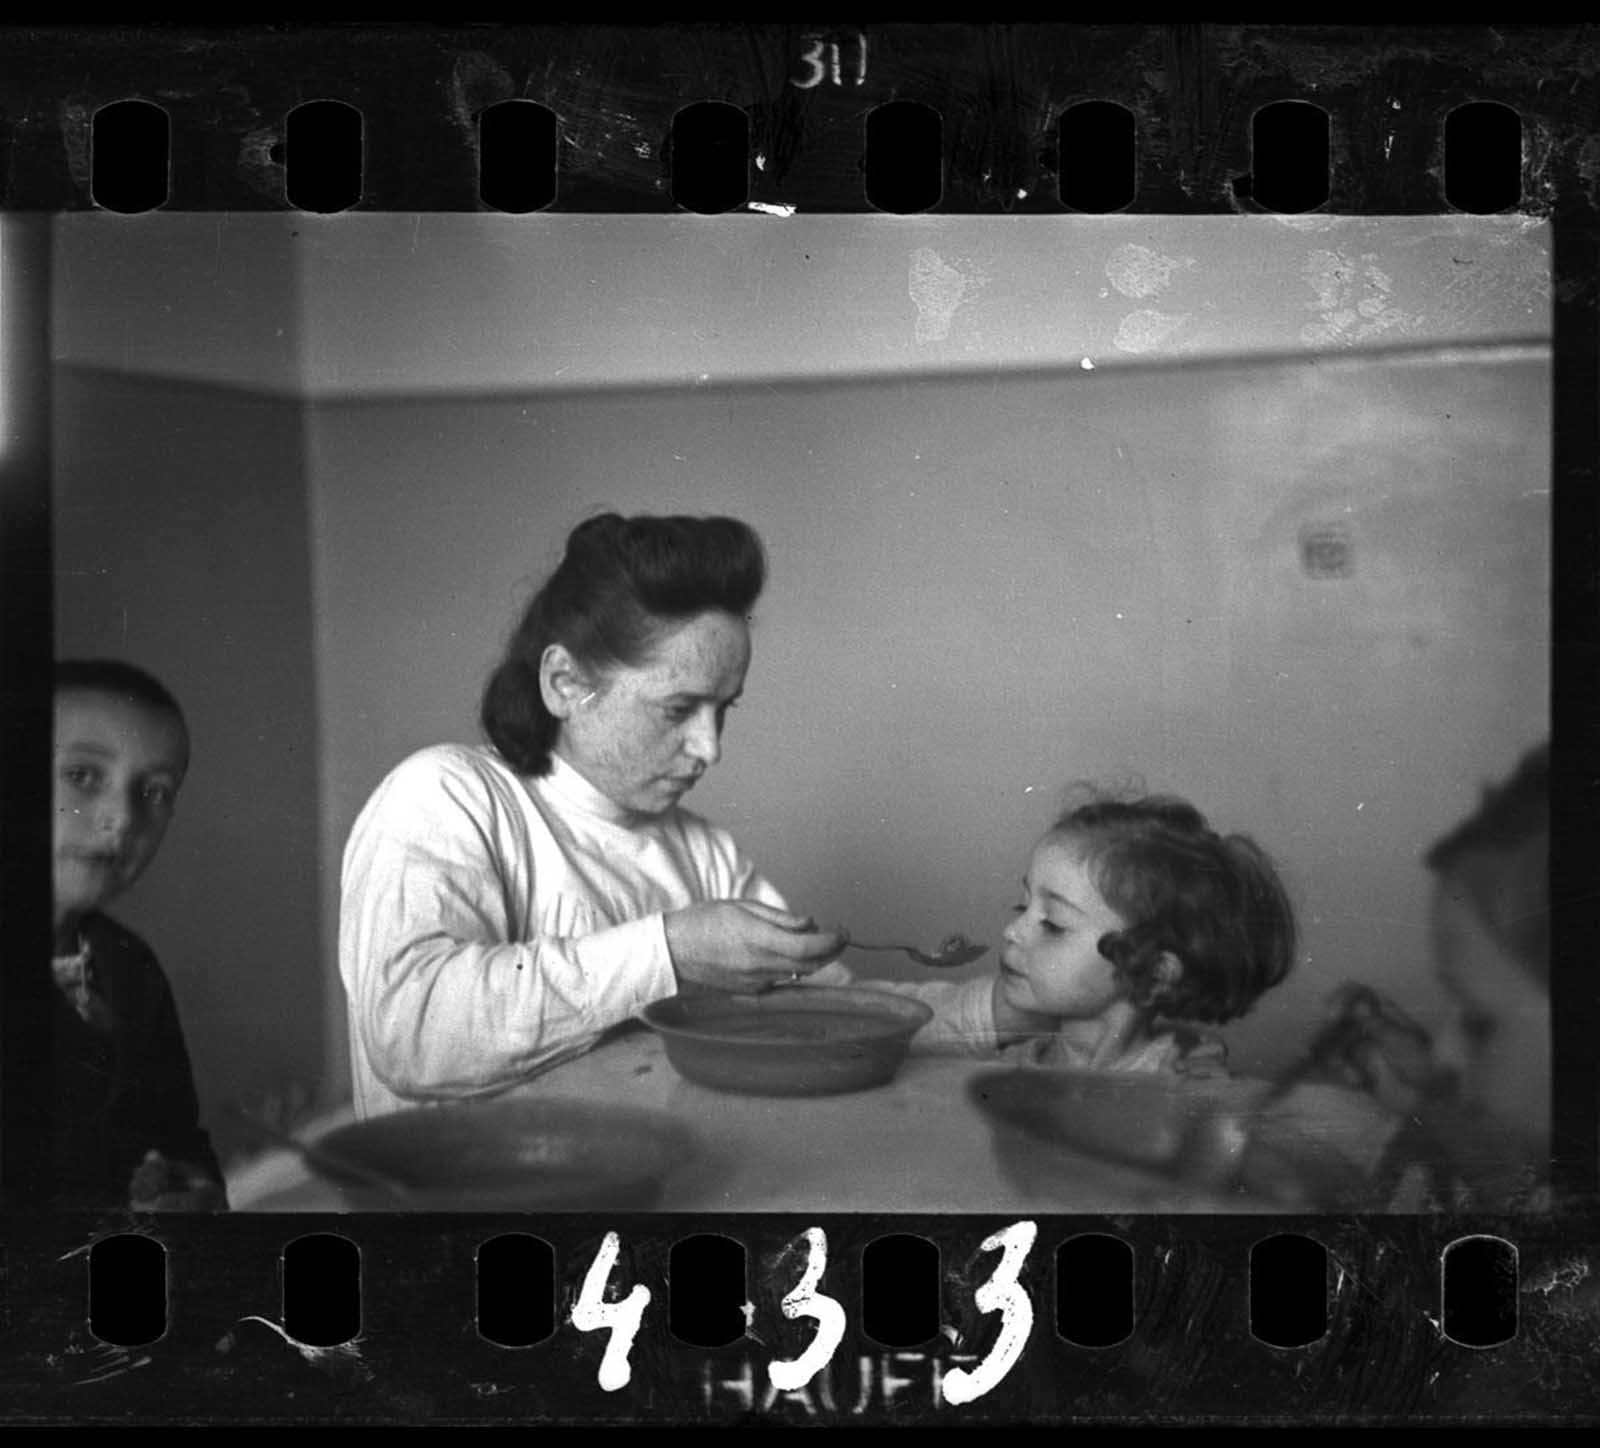 A nurse feeding children in an orphanage.